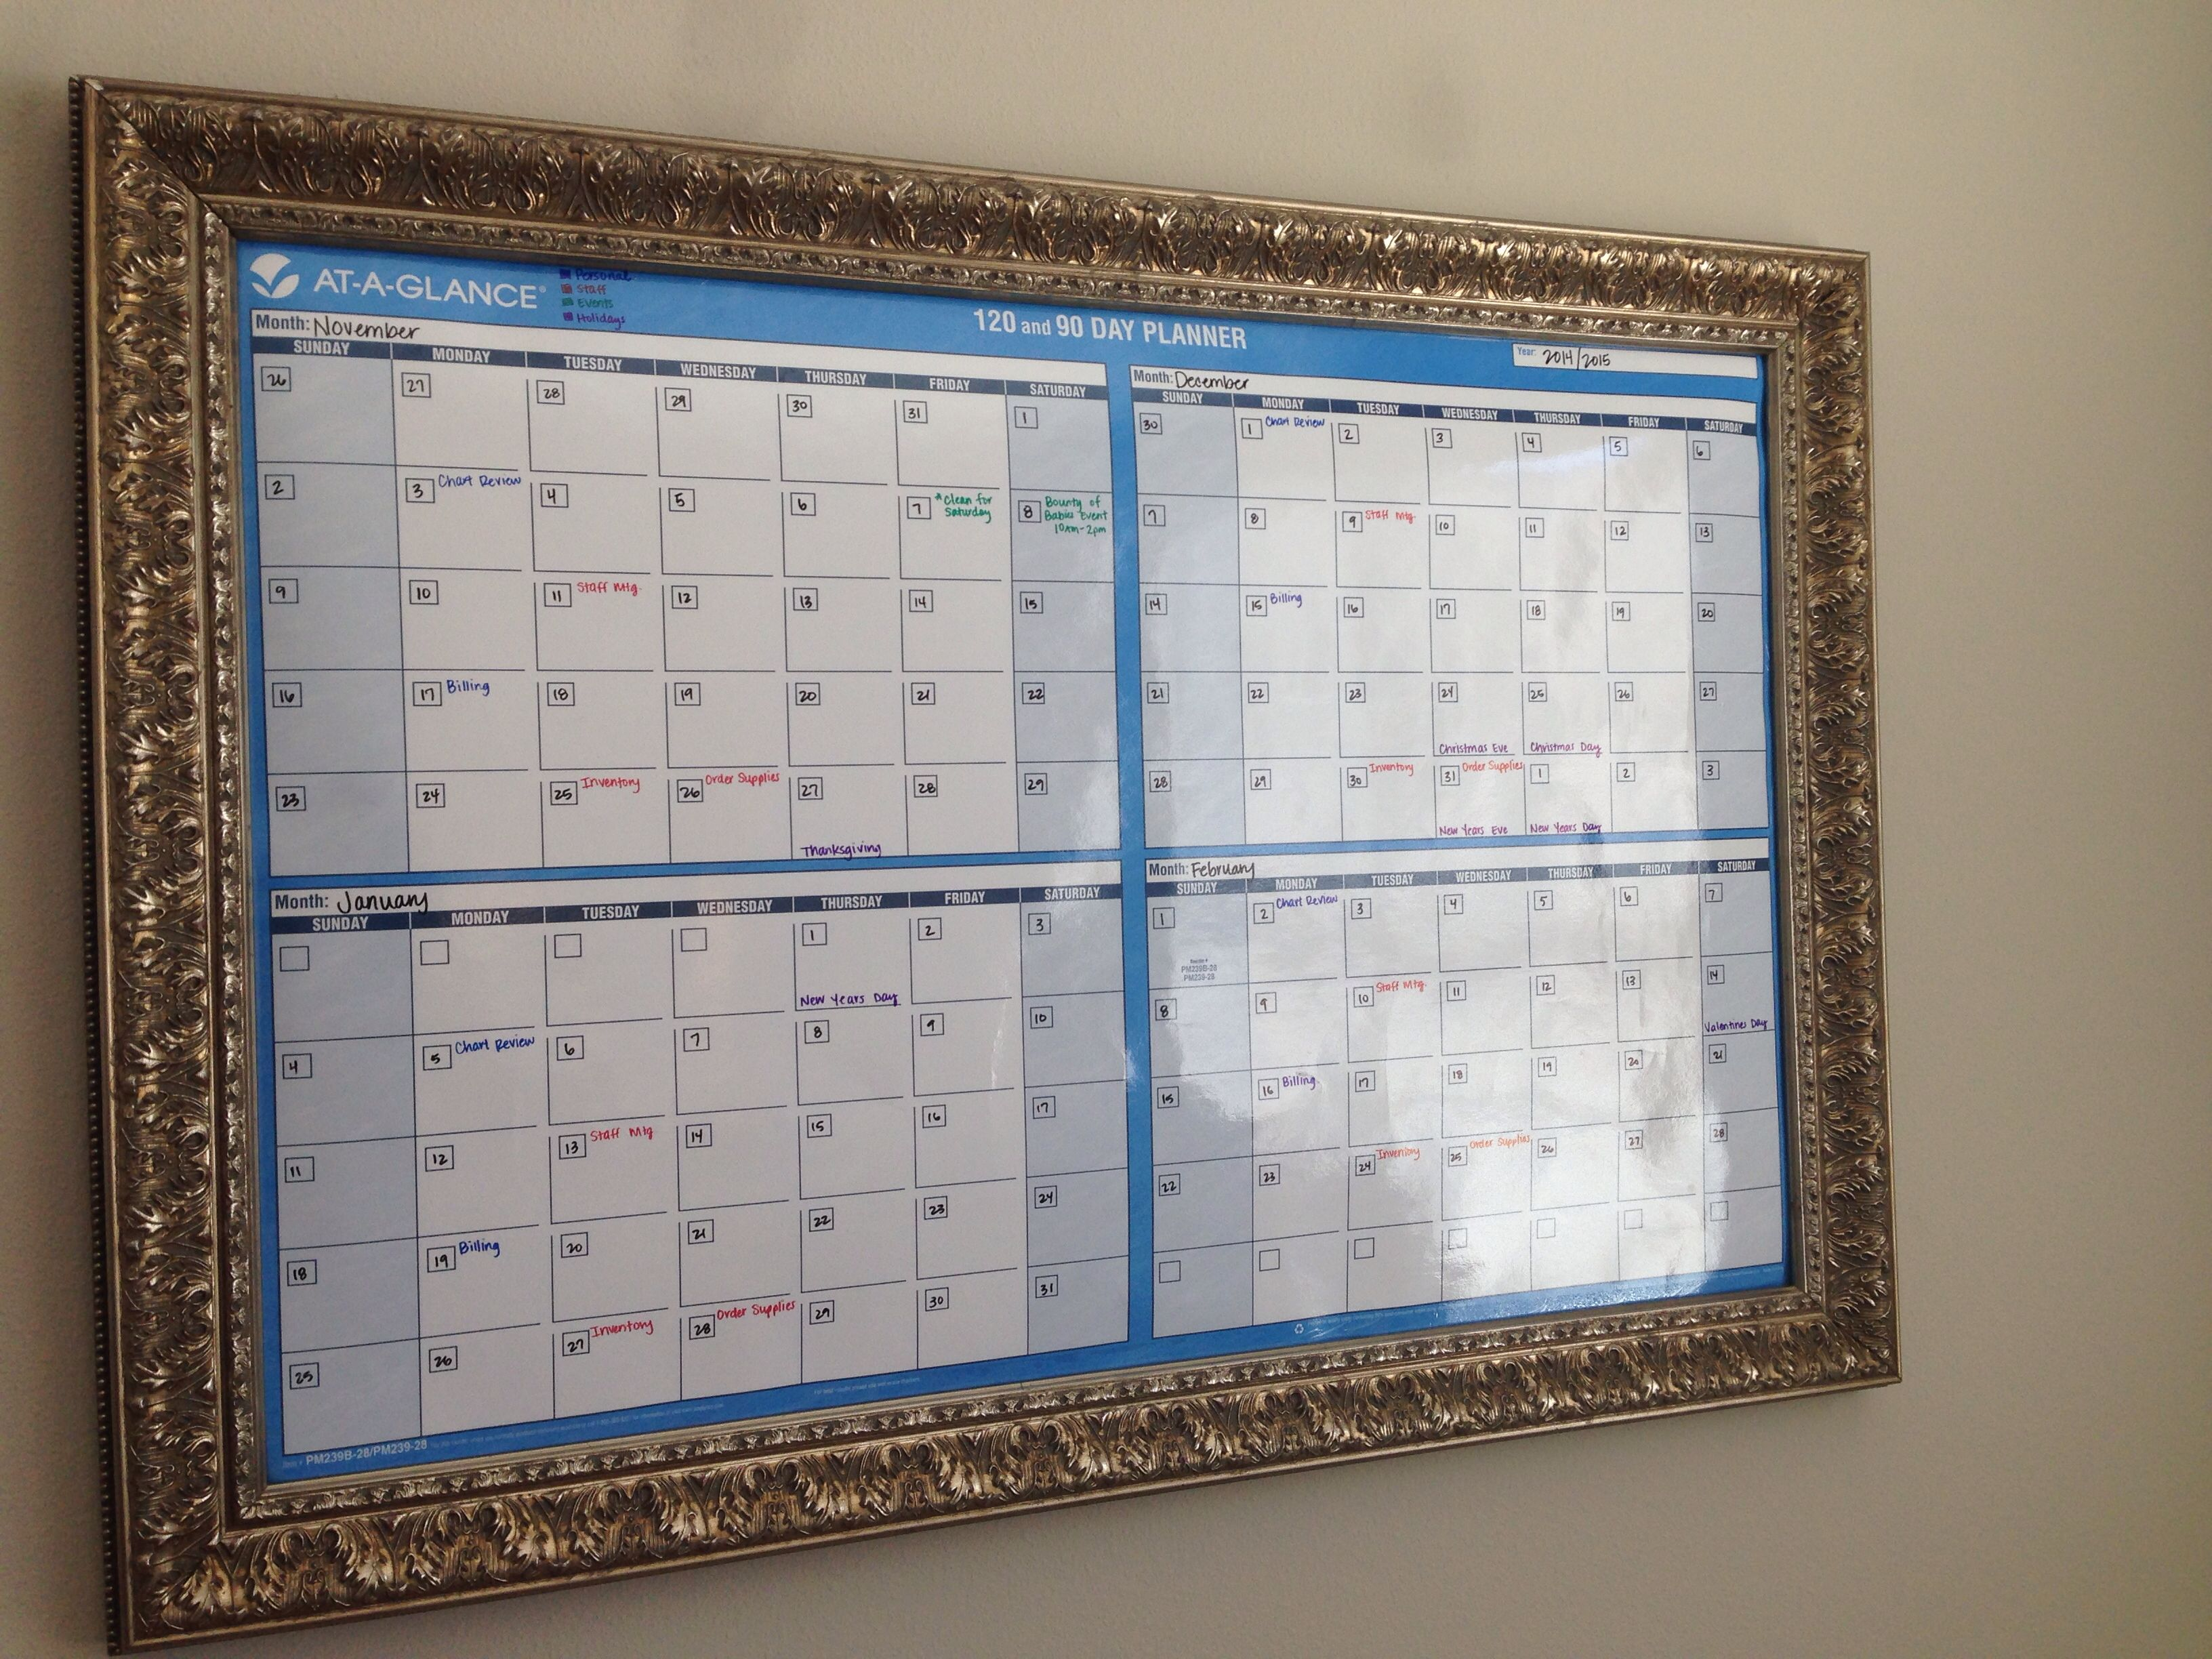 my wife wanted an event calendar on the wall unique she said